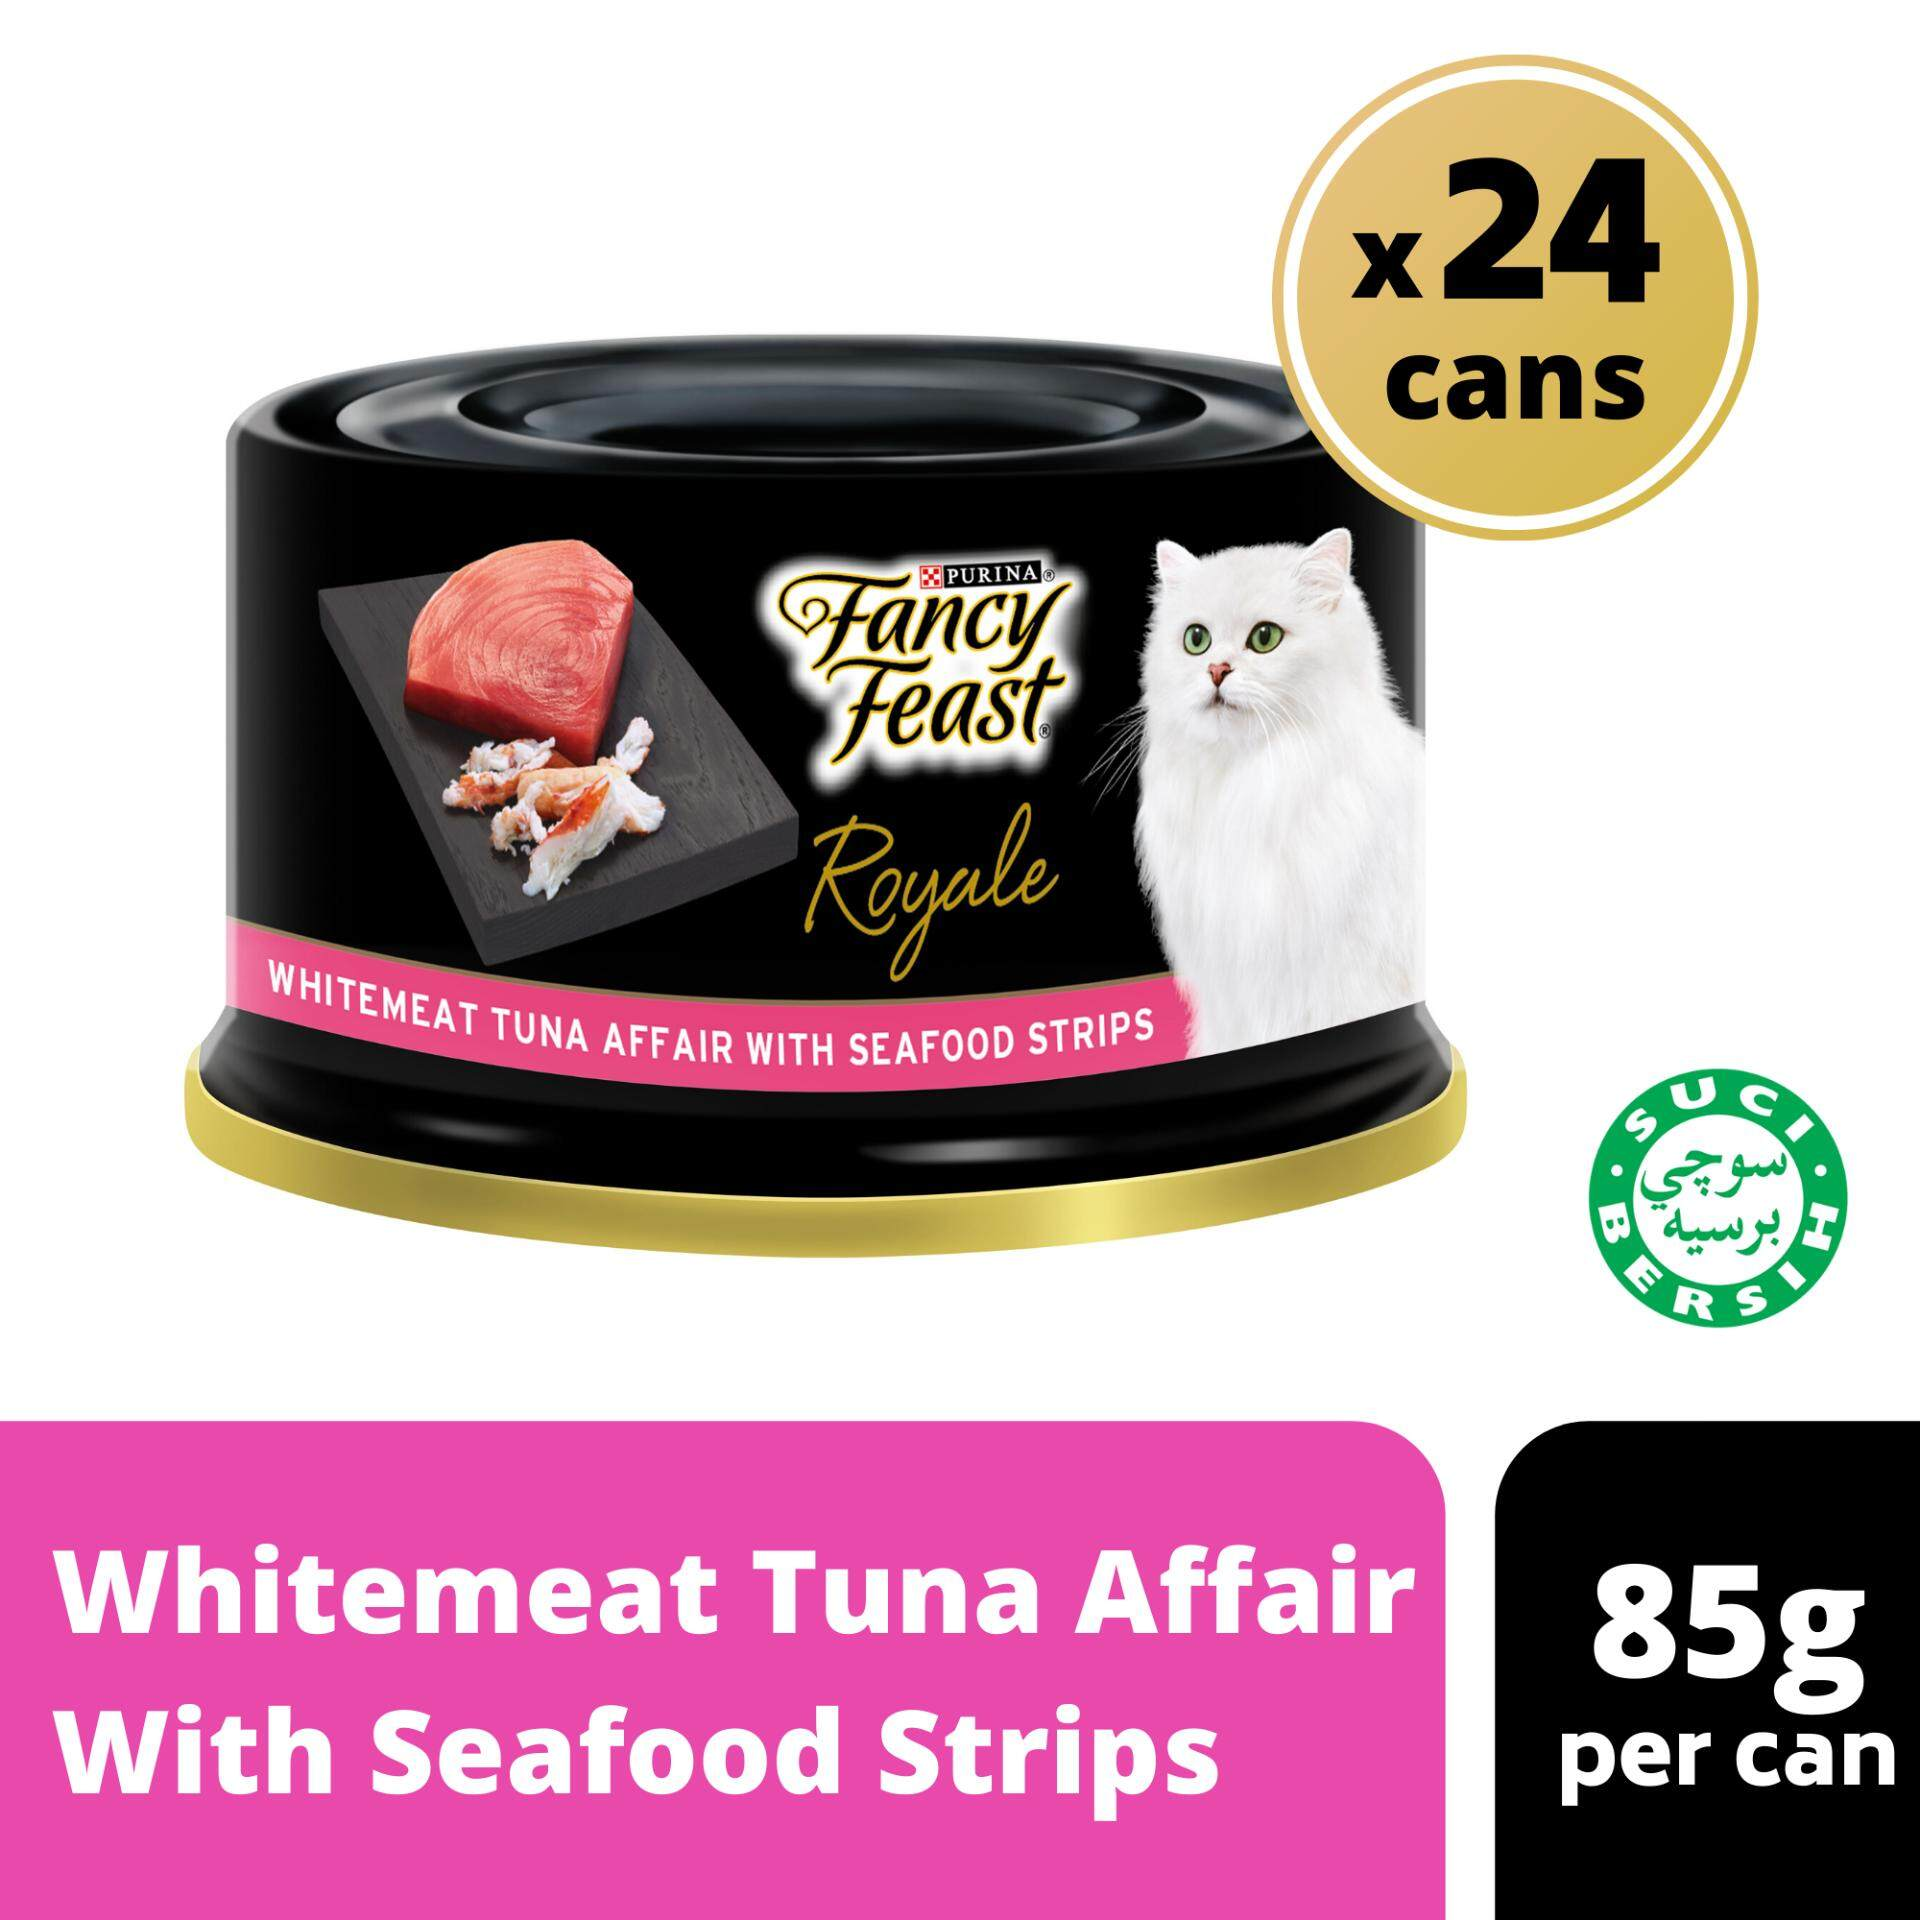 FANCY FEAST ROYALE Whitemeat Tuna Affair With Seafood Strips Wet Cat Food Can (24 x 85g)